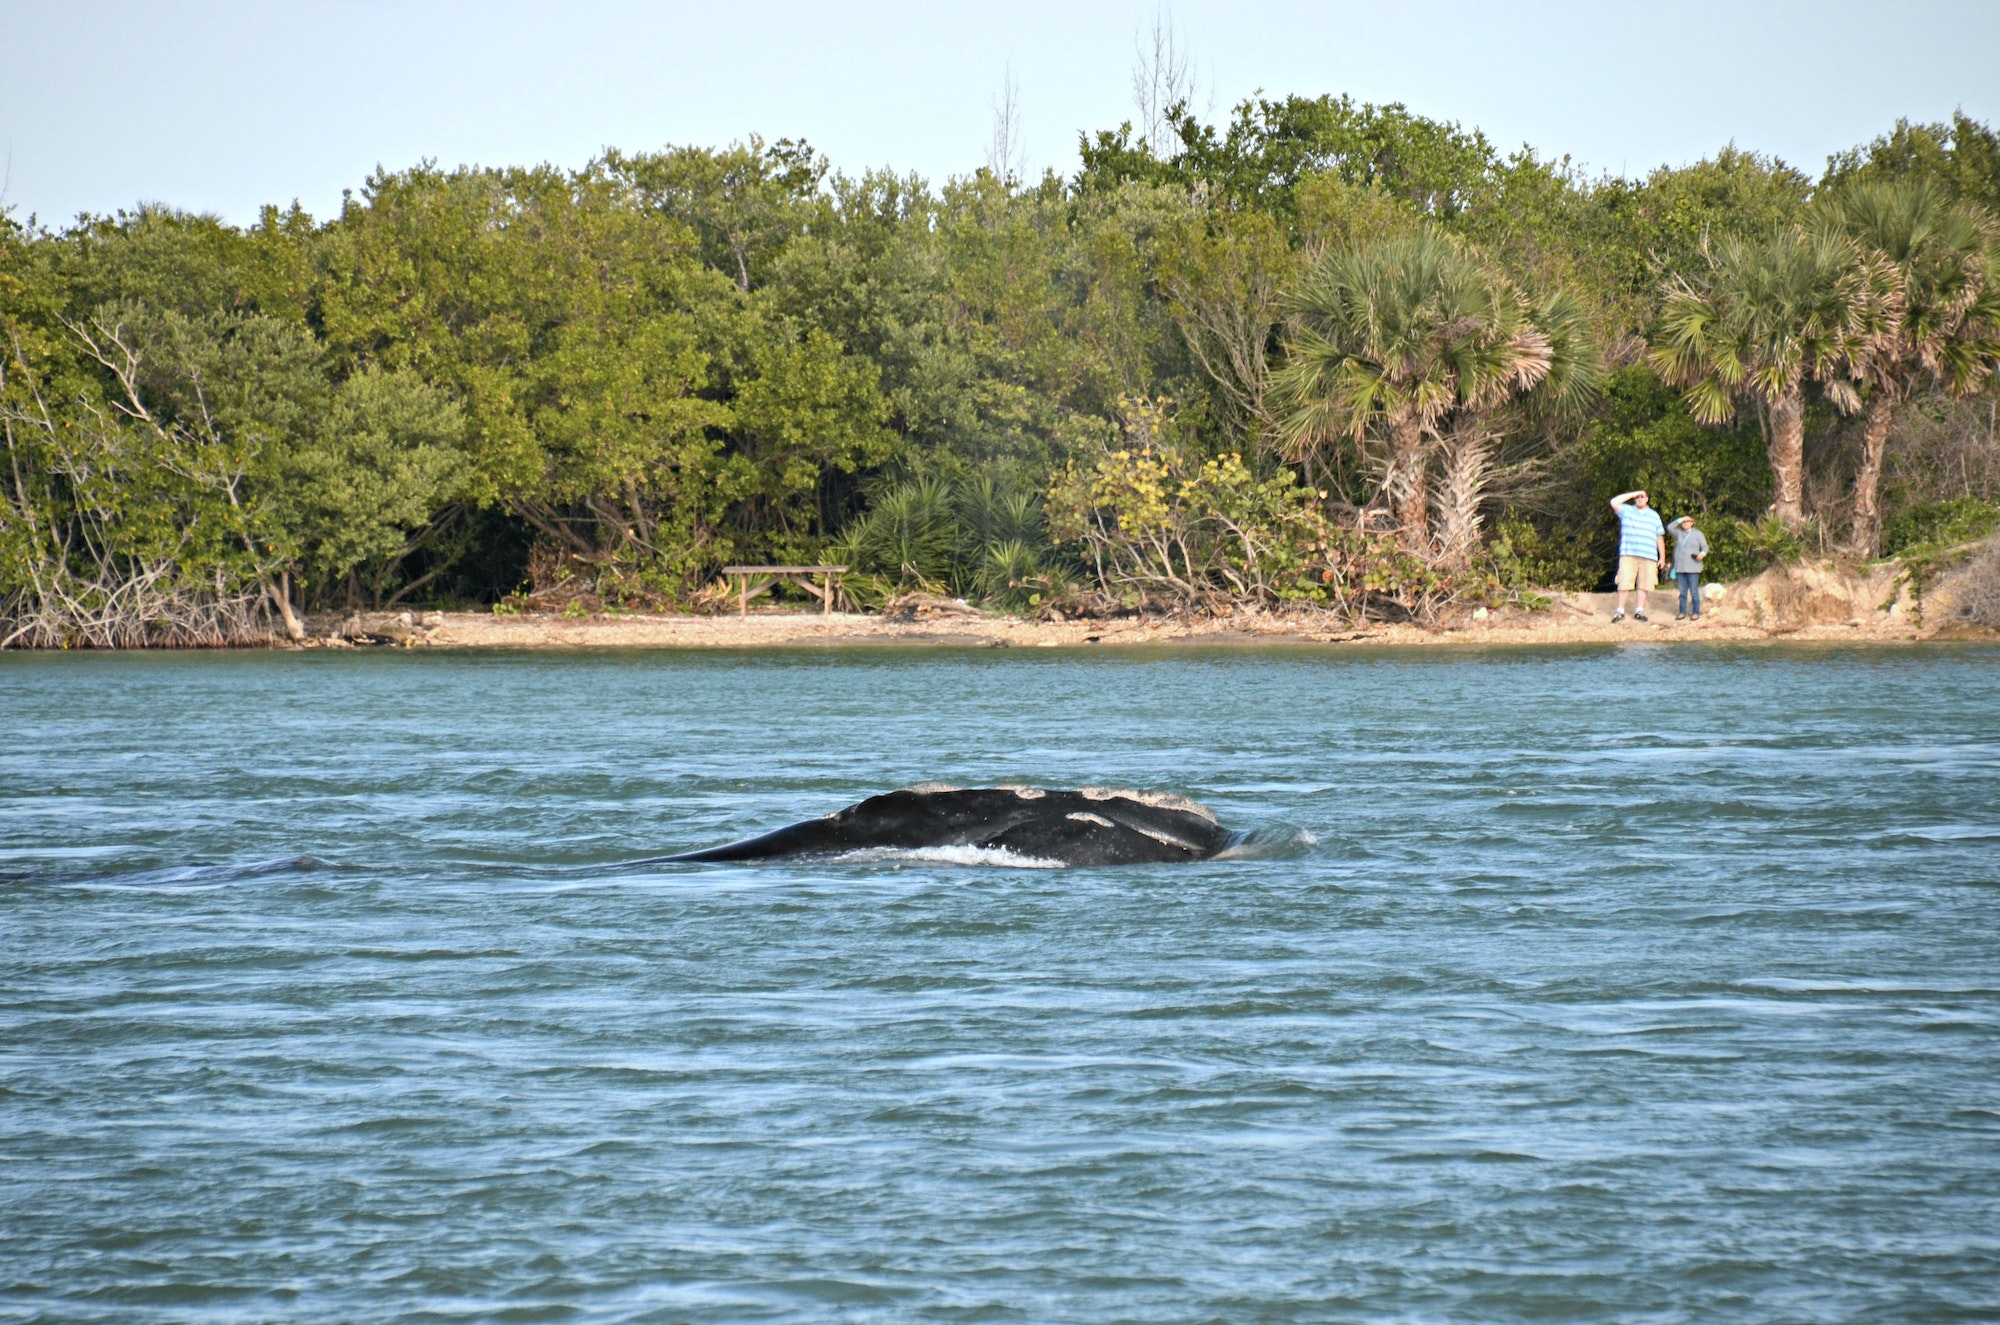 North Atlantic Right Whale in Sebastian Inlet channel